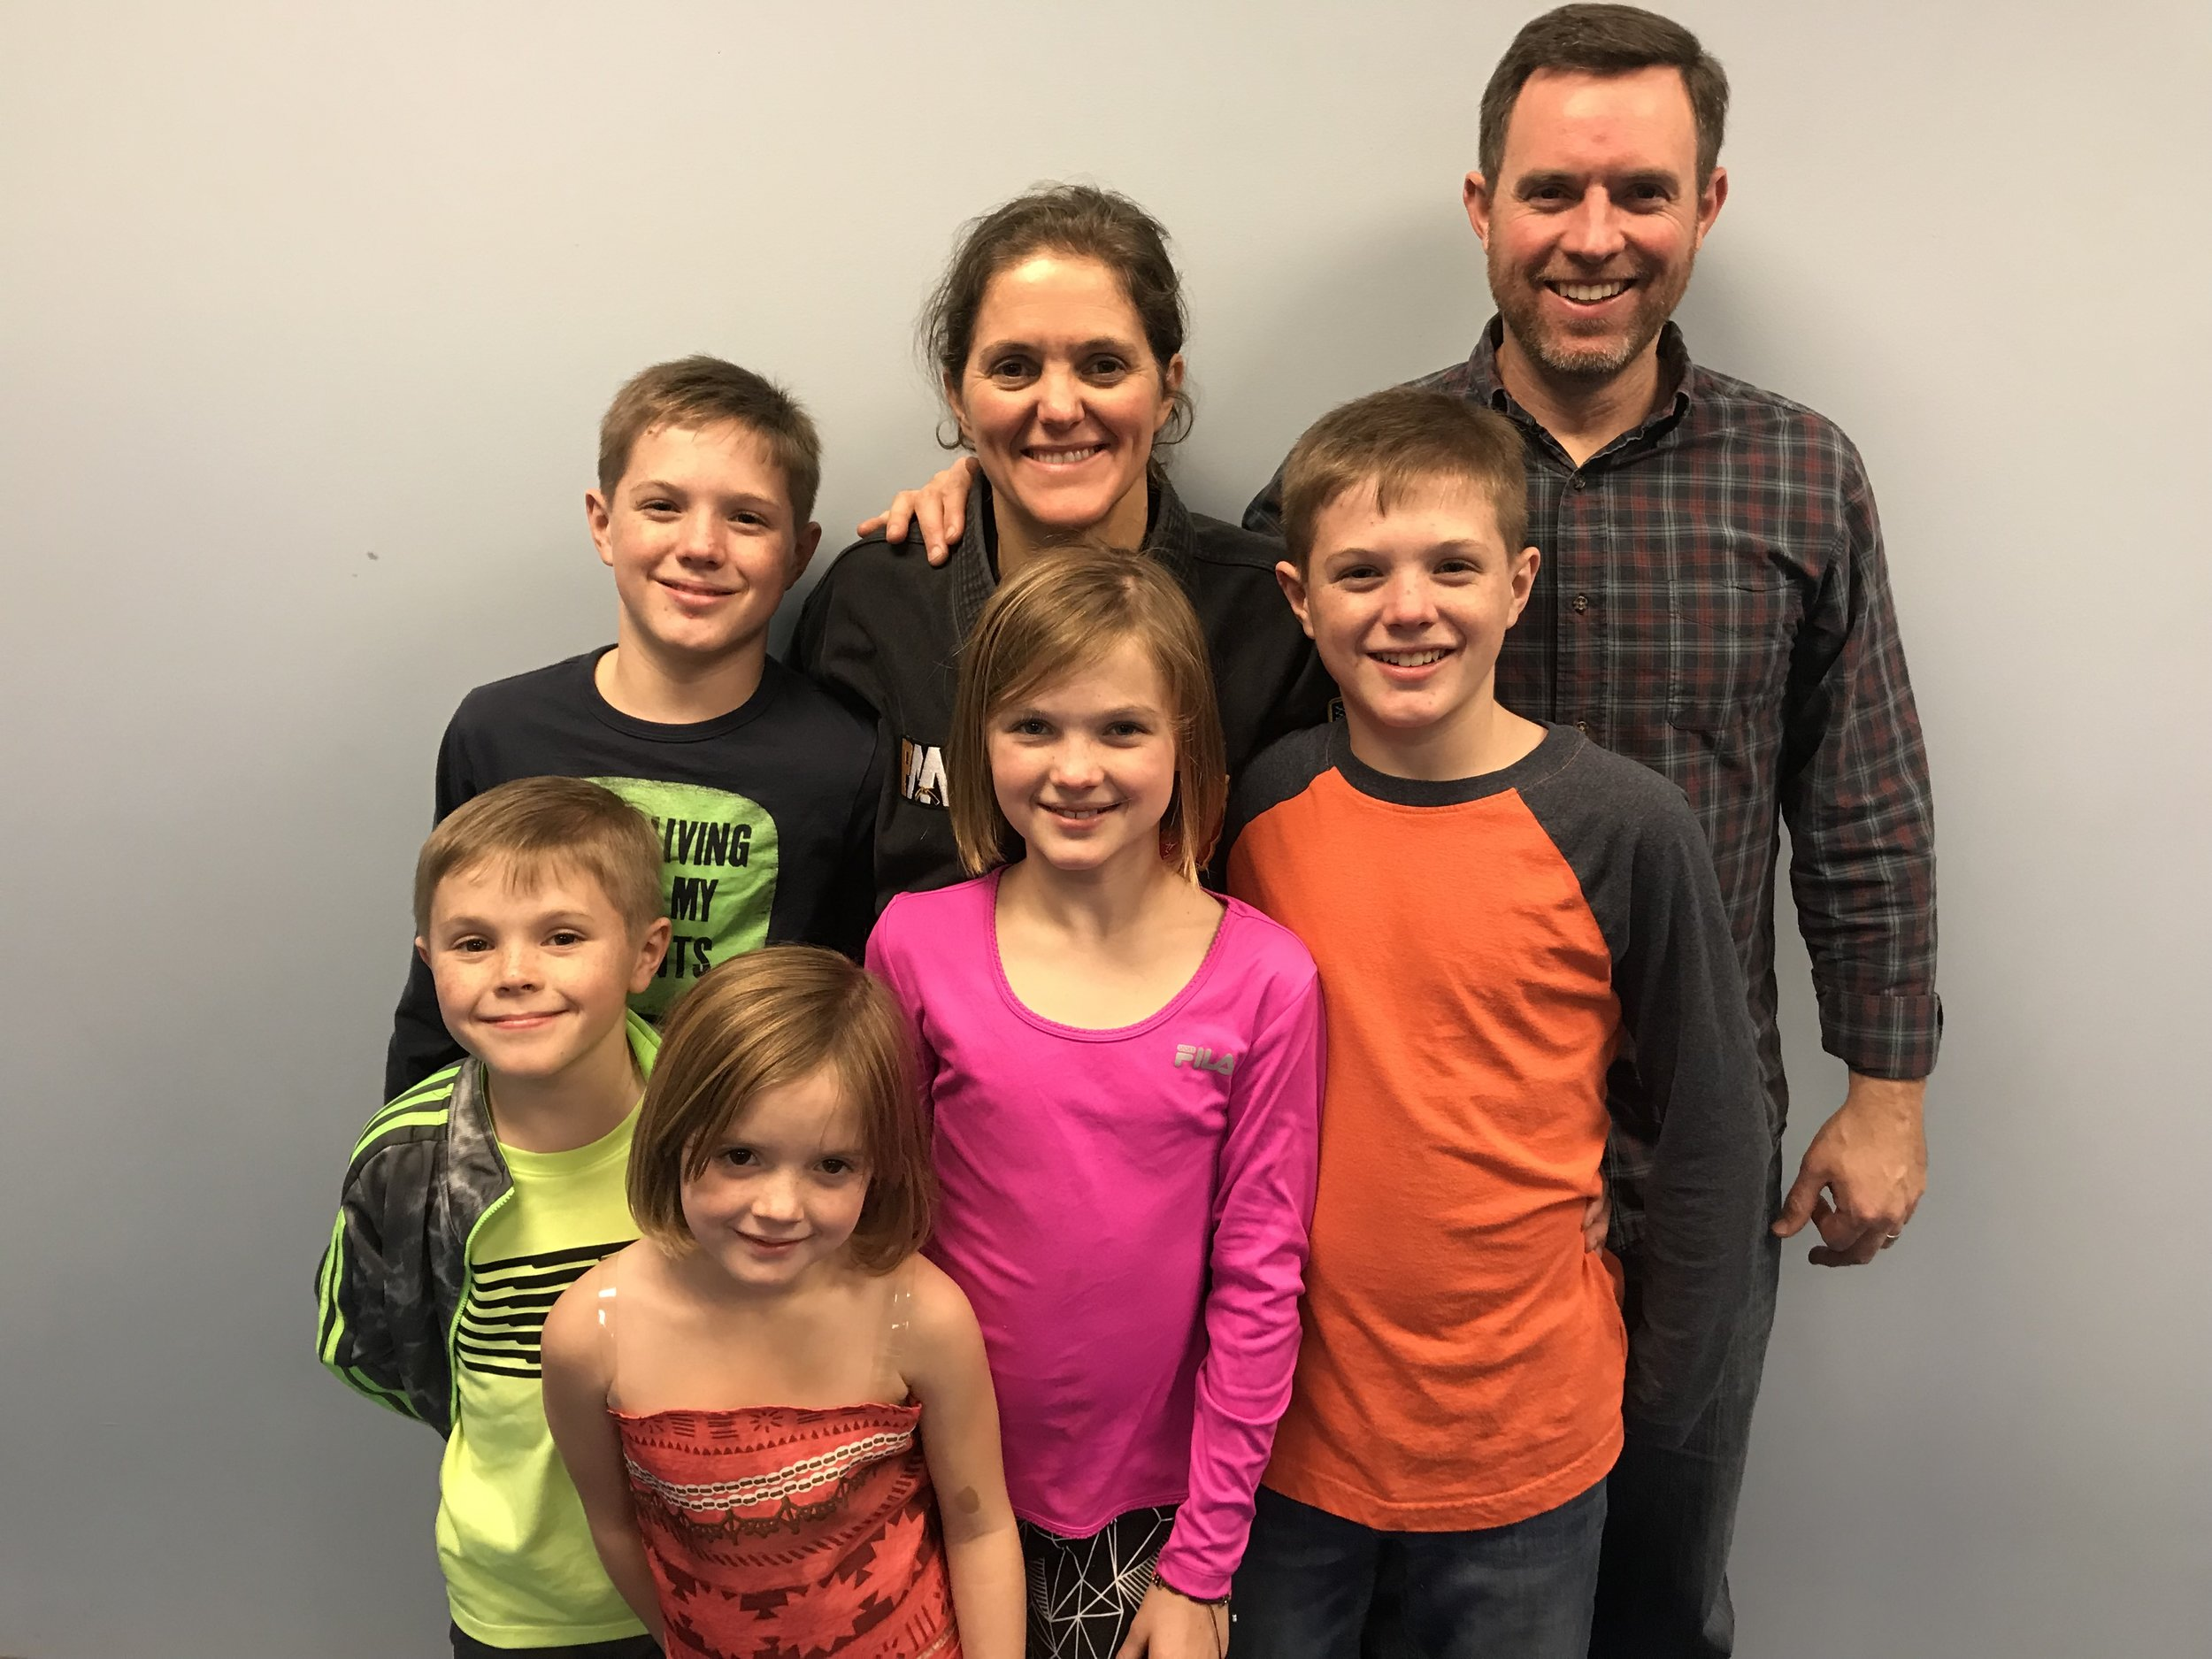 Kristie, with her husband, Sam, and their 5 children - Austin, Eli, Maggie, Grady, and Mollie. The whole family trains at PMA!